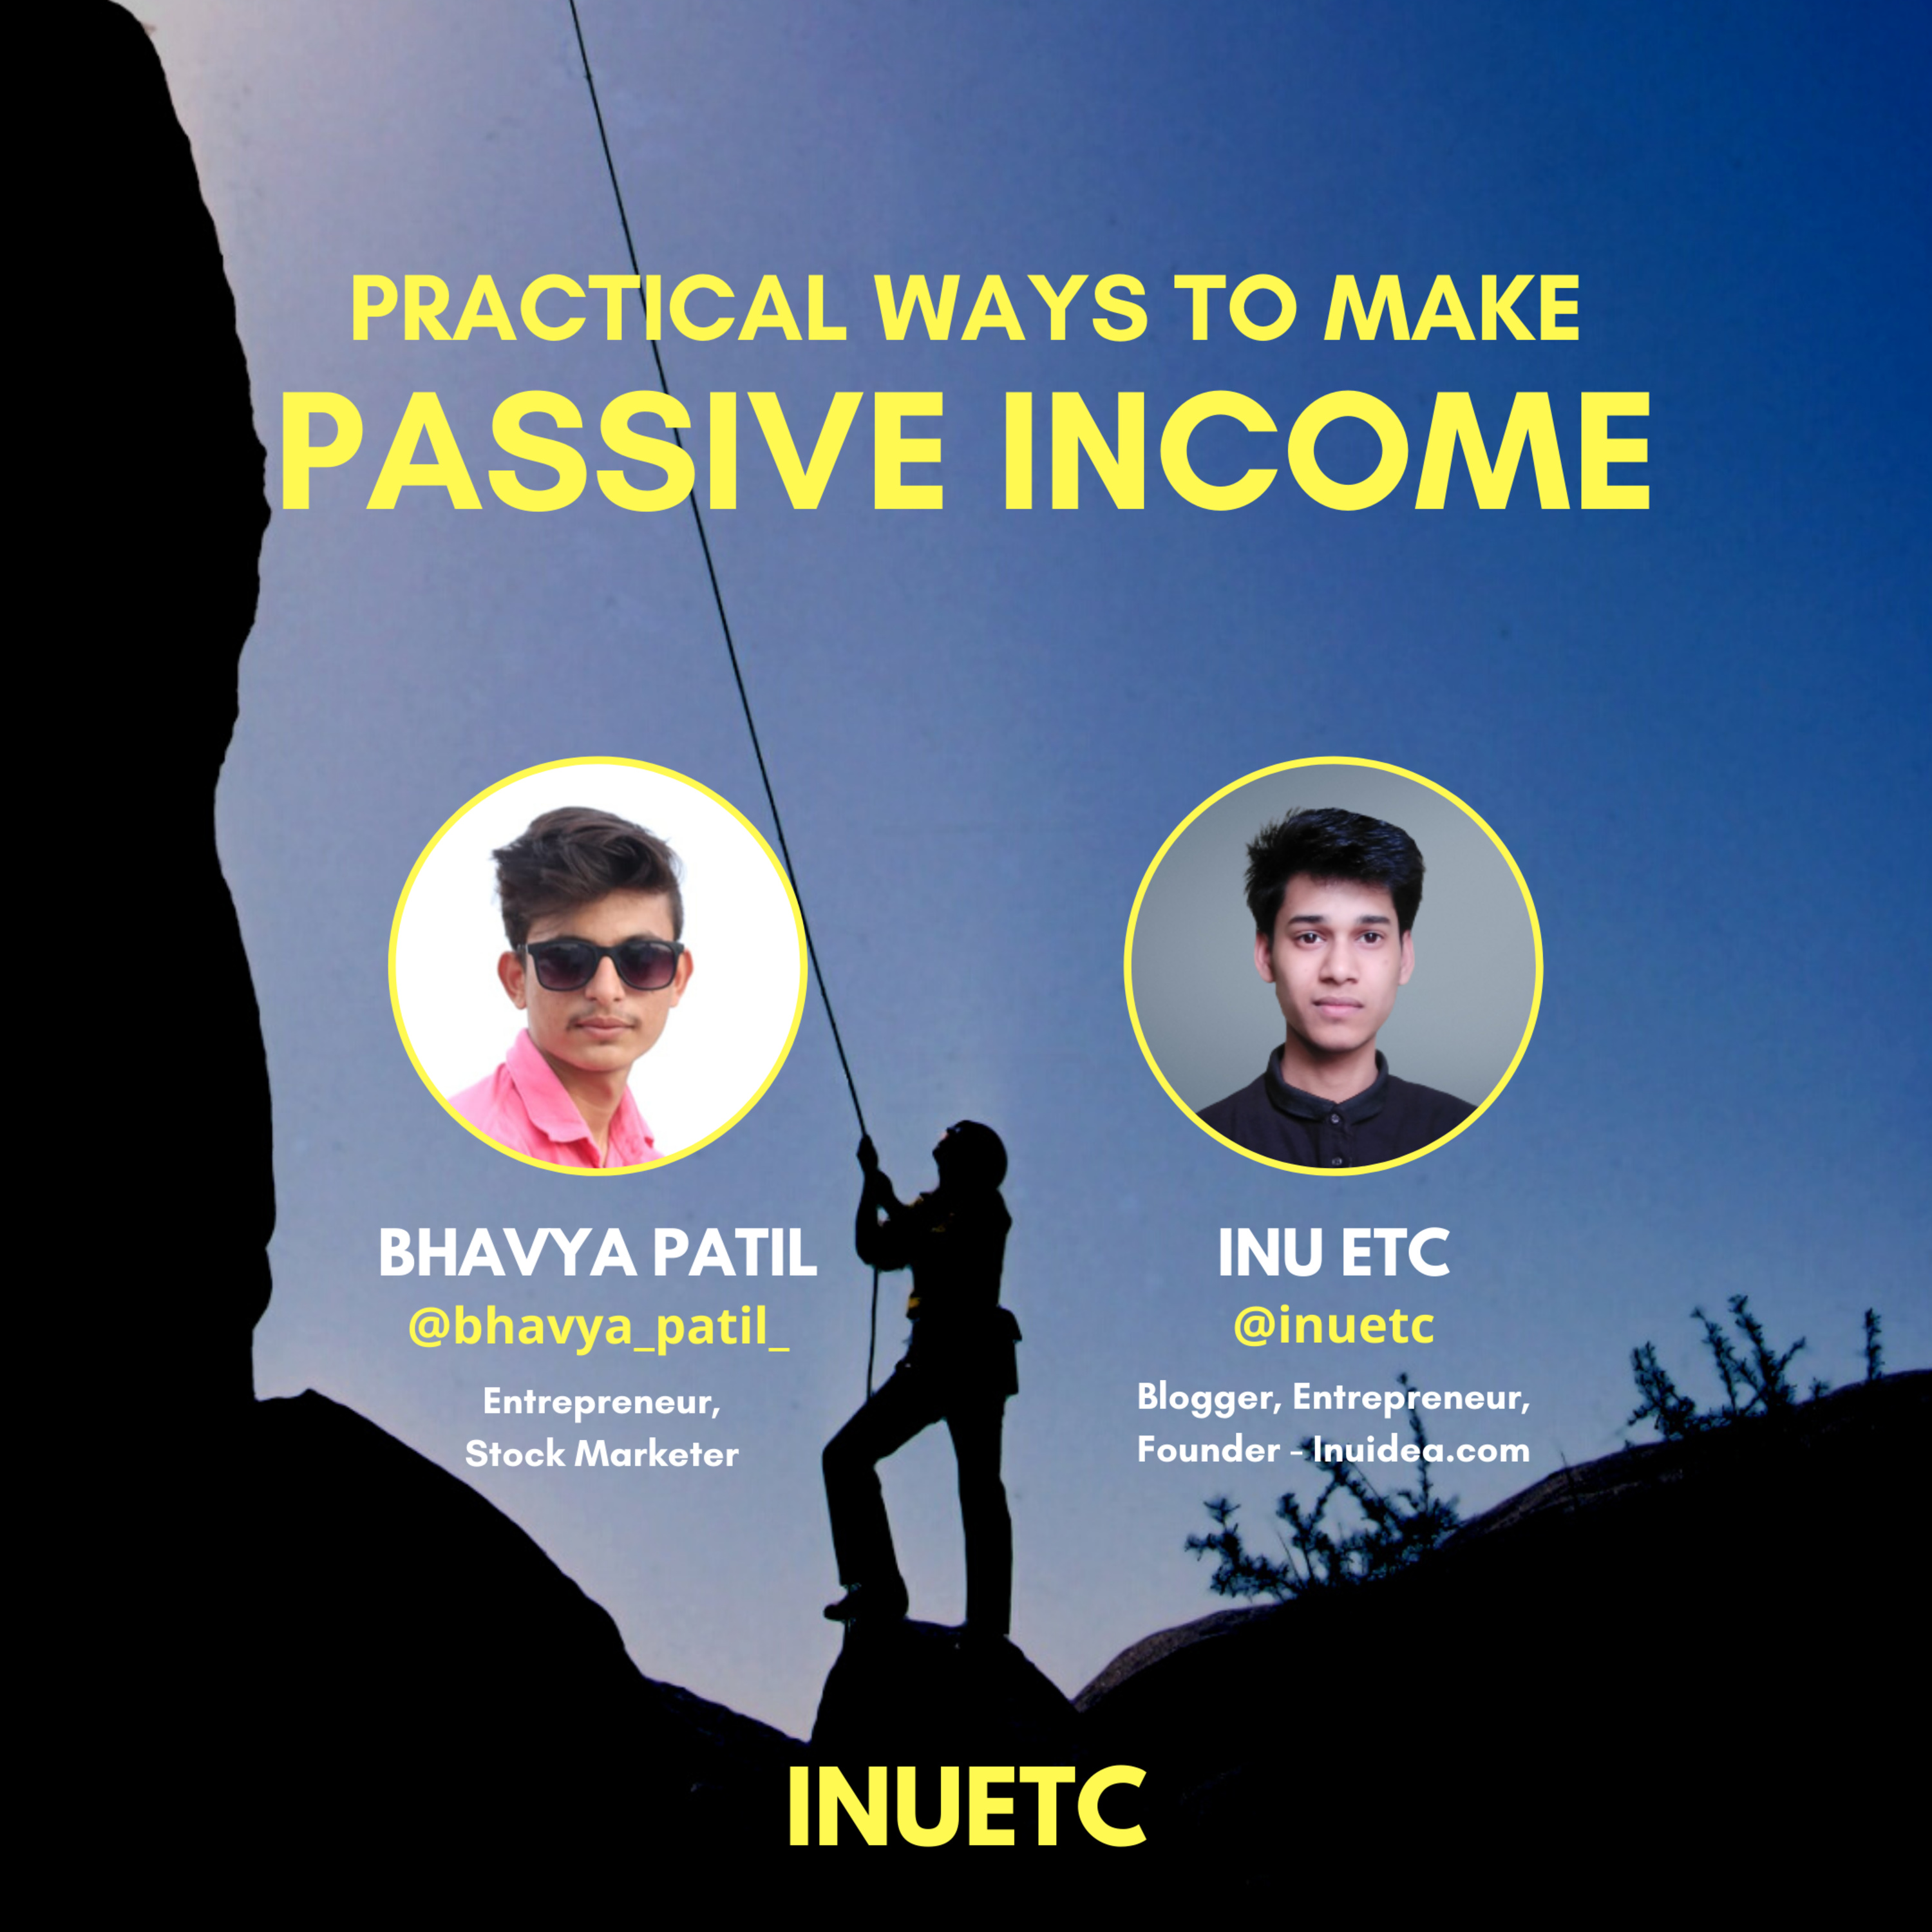 Practical Ways to Make Passive Income - Inu Etc on The Bhavya Patil Show | EP#06